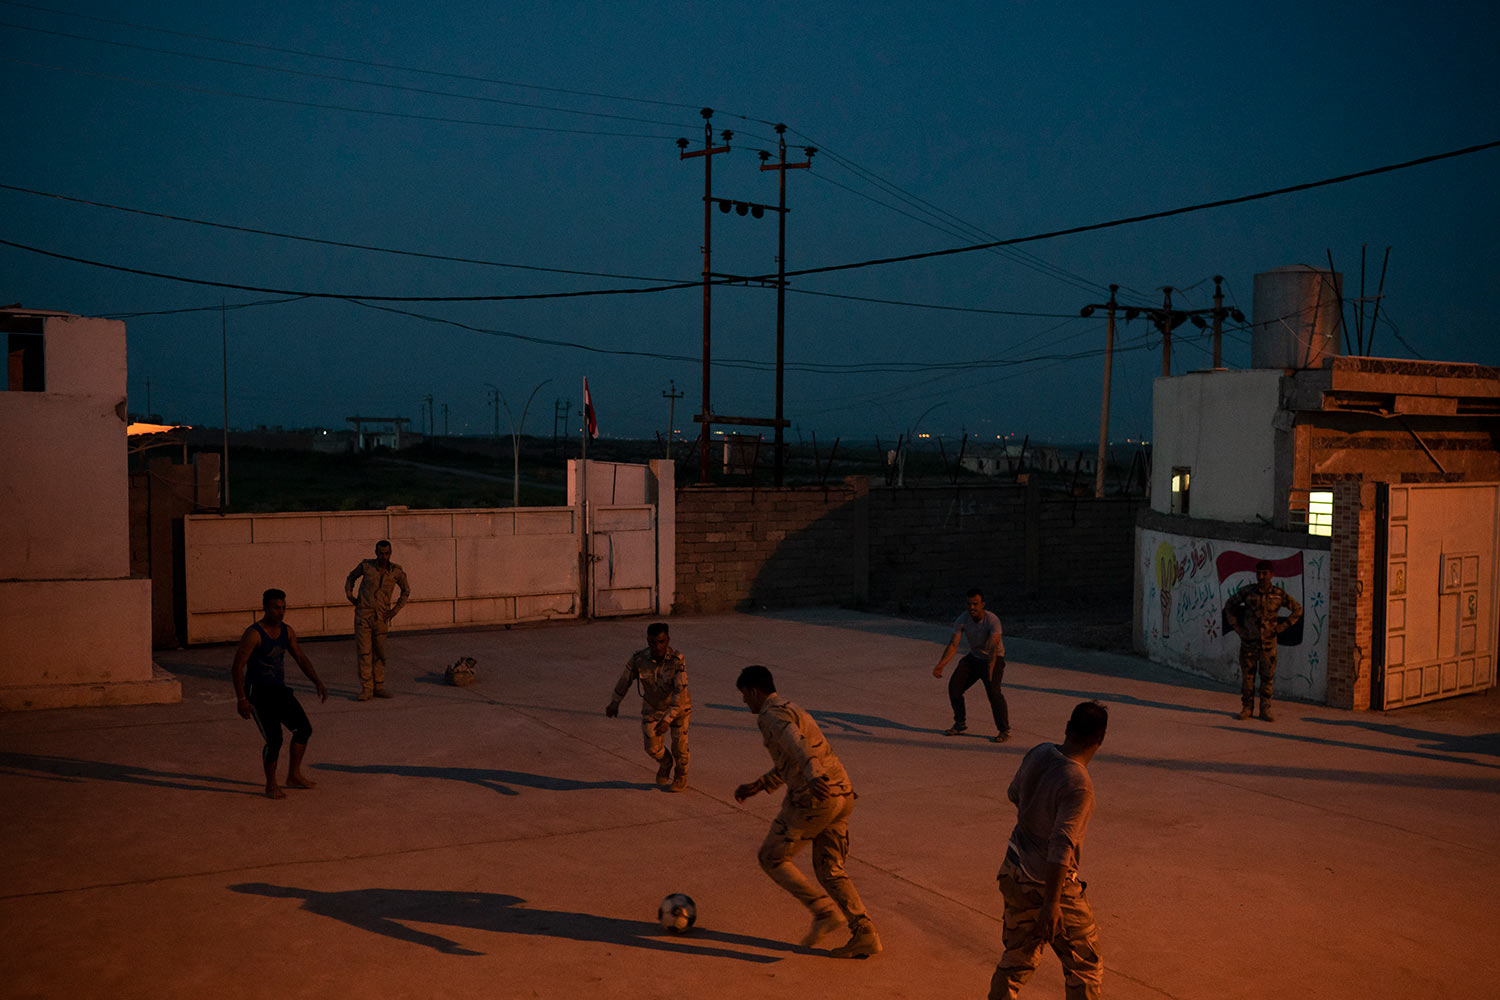 In this April 9, 2019 photo, Iraqi army 20th division soldiers play soccer in a military base in Badoush, Iraq. (AP Photo/Felipe Dana)